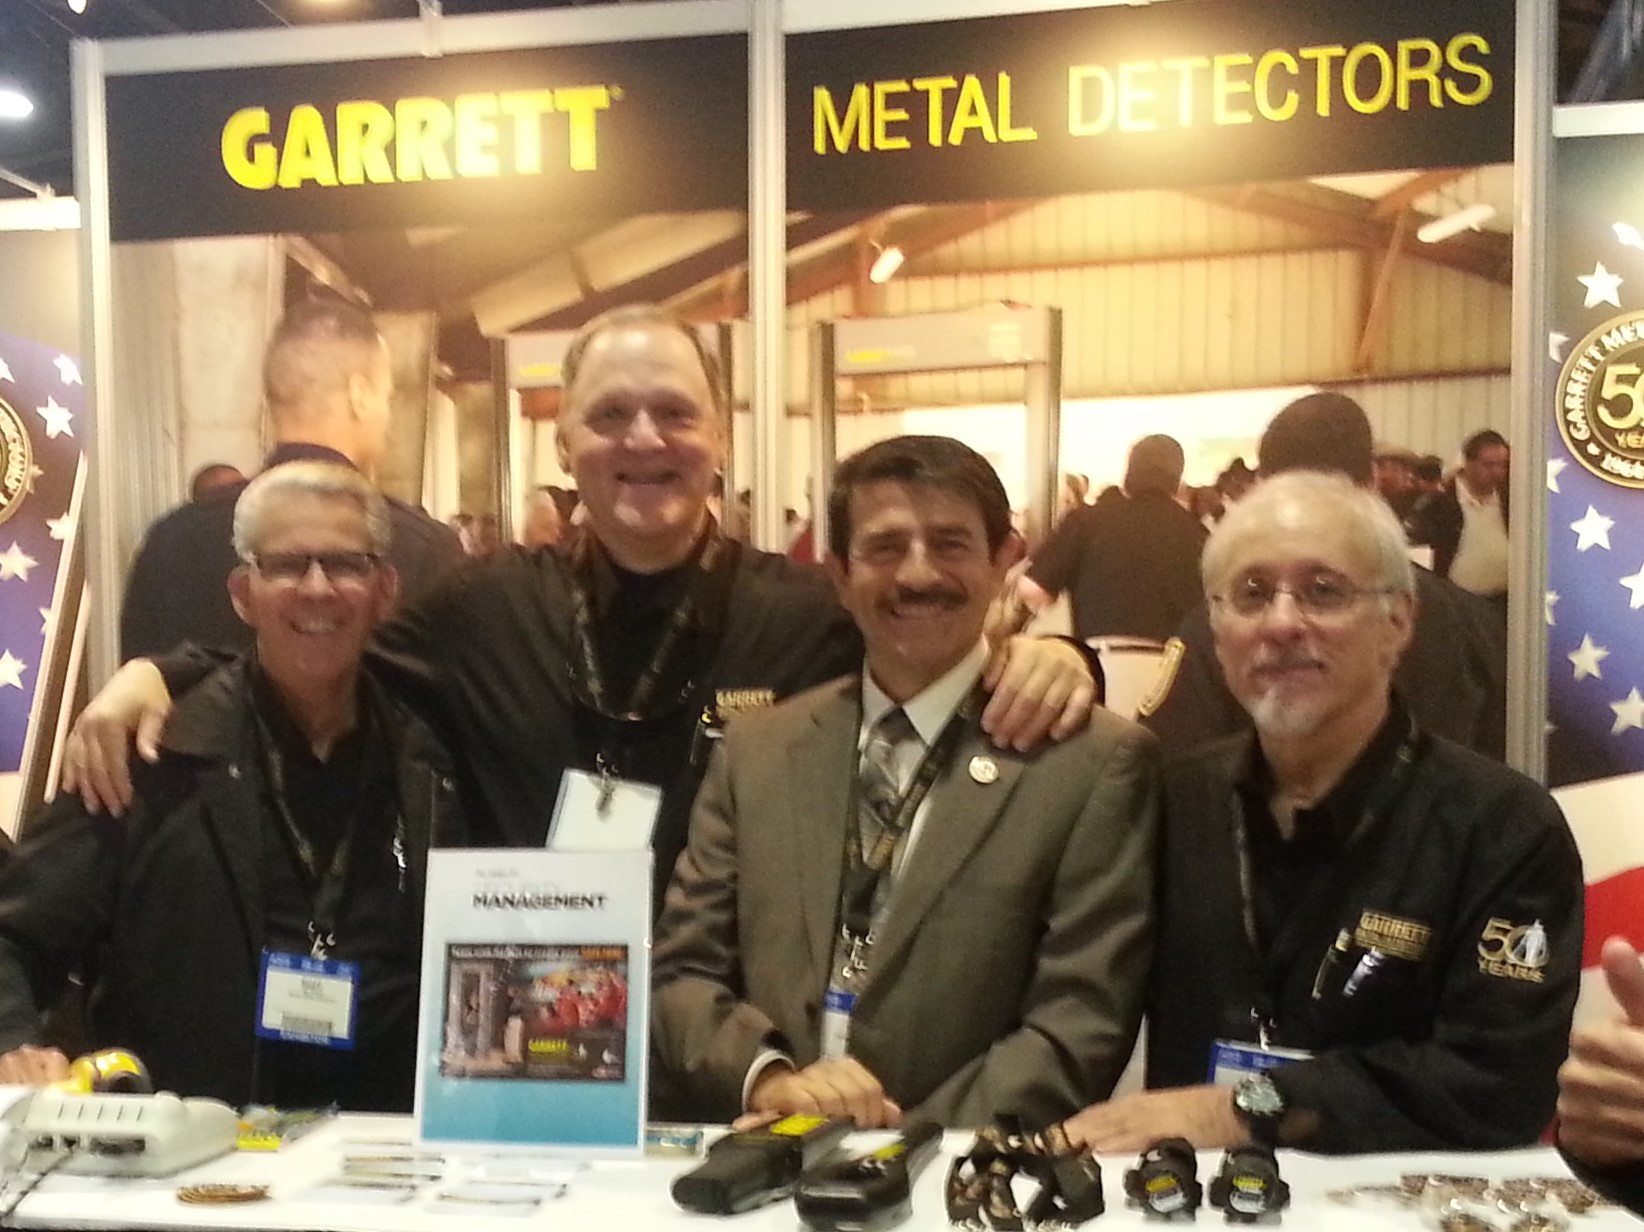 Tom Pertierra, Co-Founder of National Association of Police Equipment Distributors (NAPED), Passes